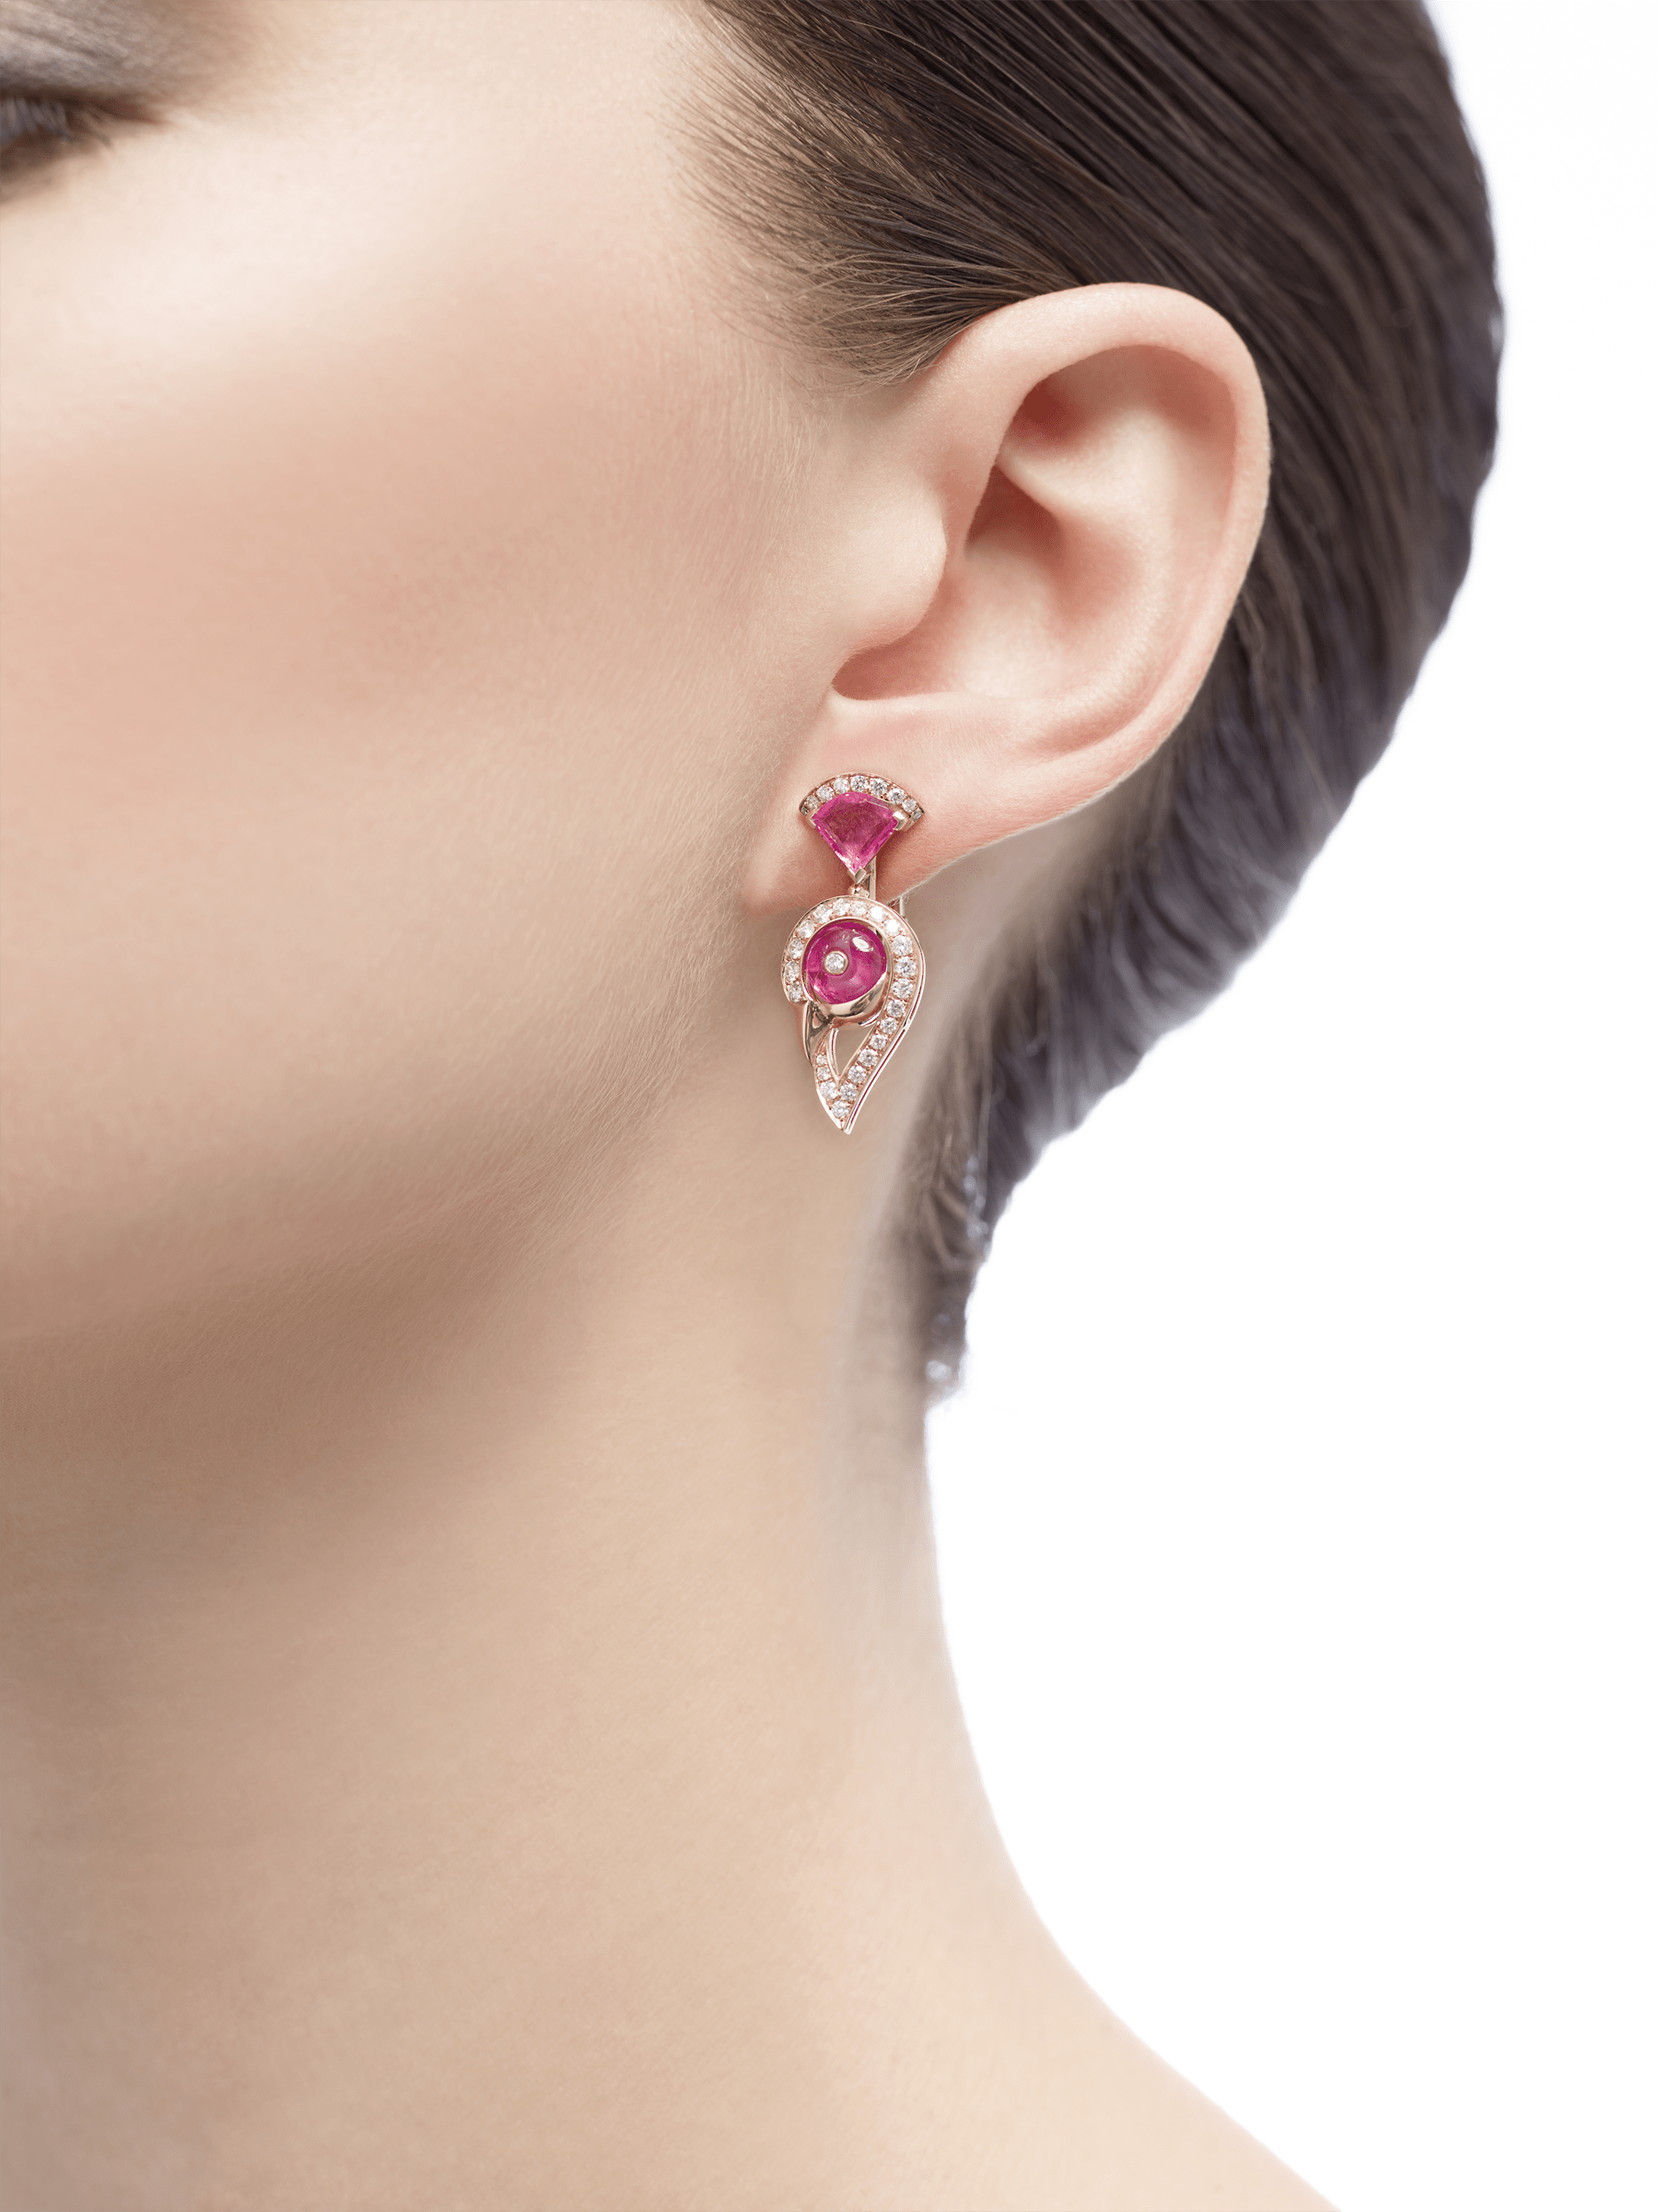 Boucles d'oreille DIVAS' DREAM en or rose 18 K serties de rubellite rose et tourmaline rose avec pavé diamants. 354079 image 4